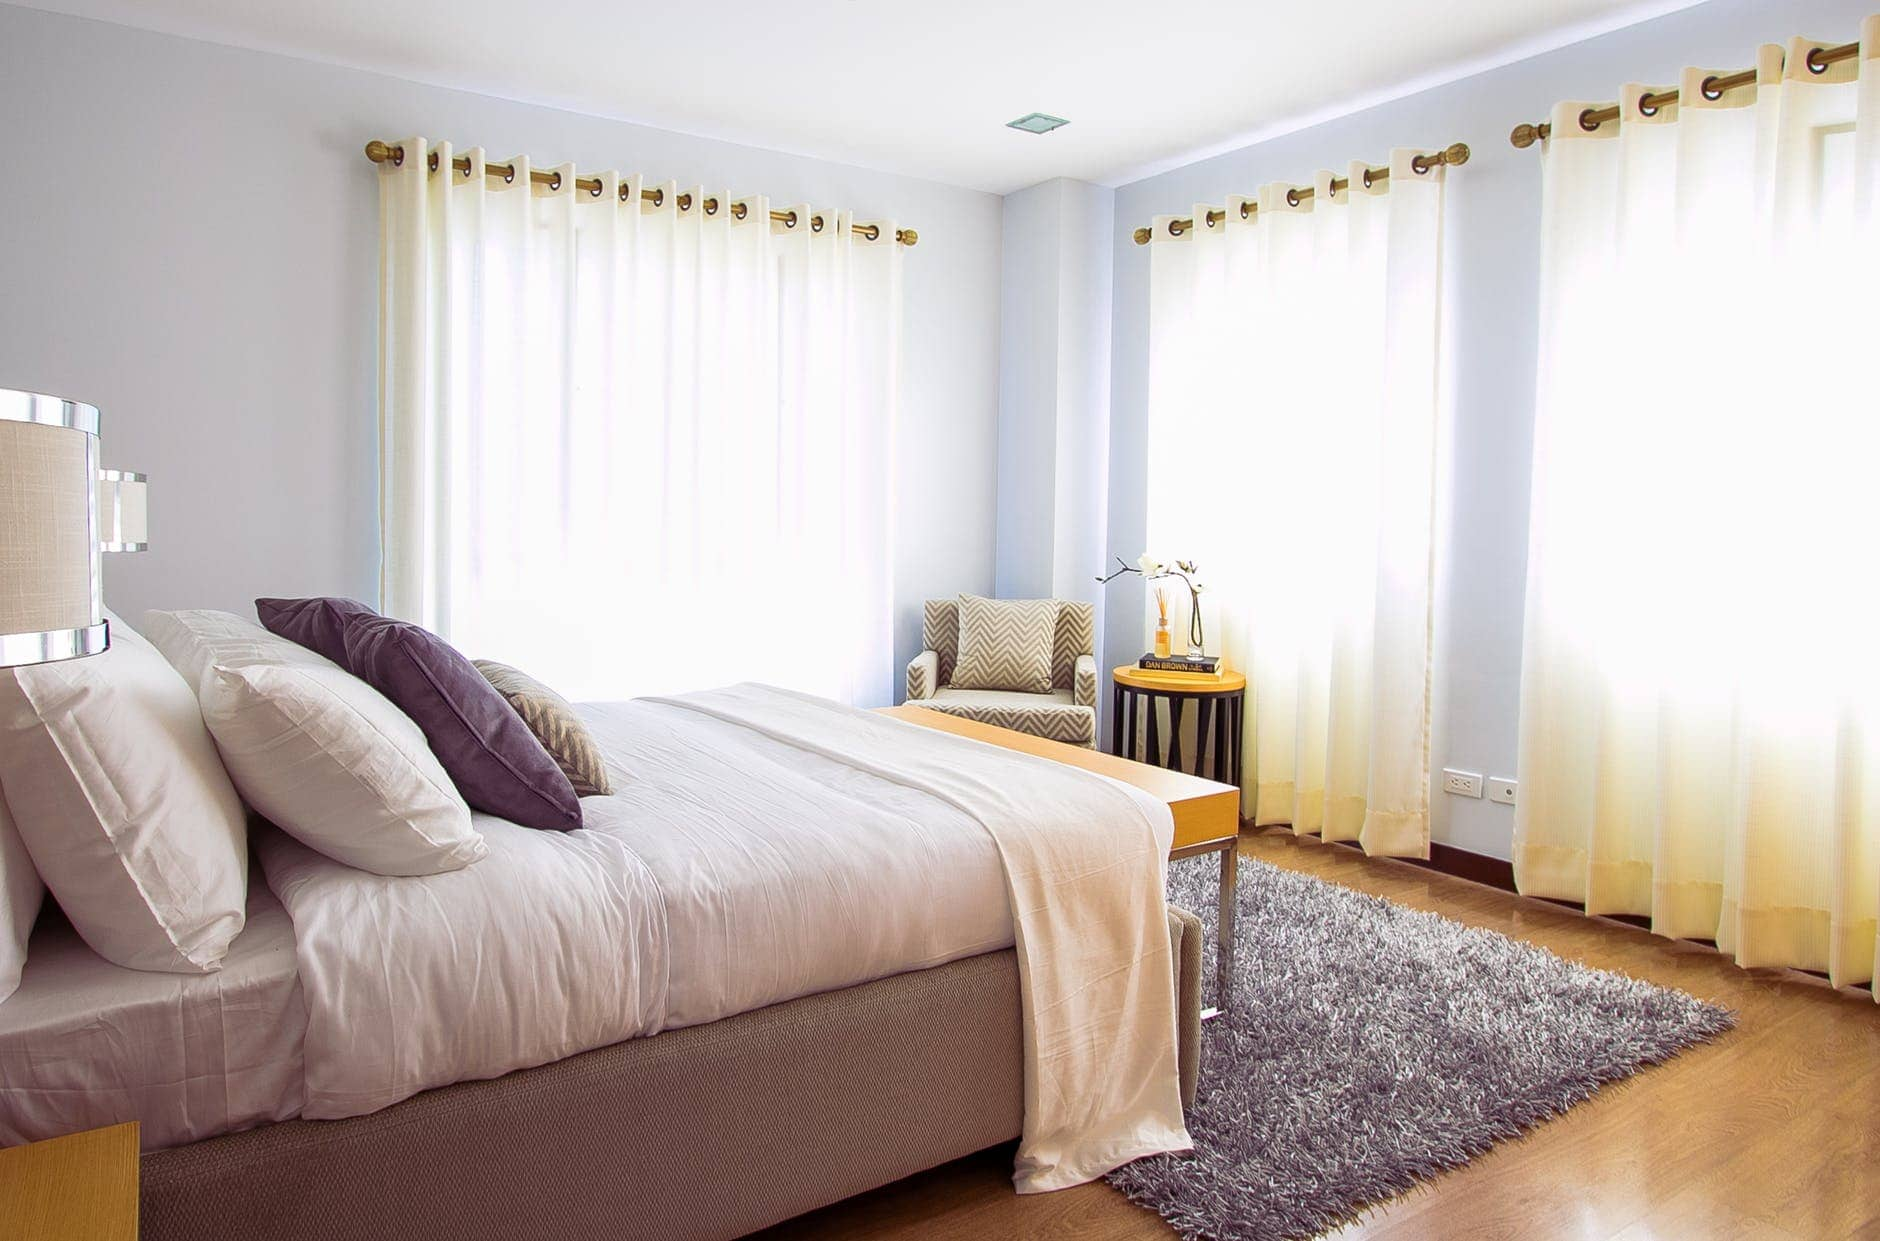 5 benefits of making your bed every morning